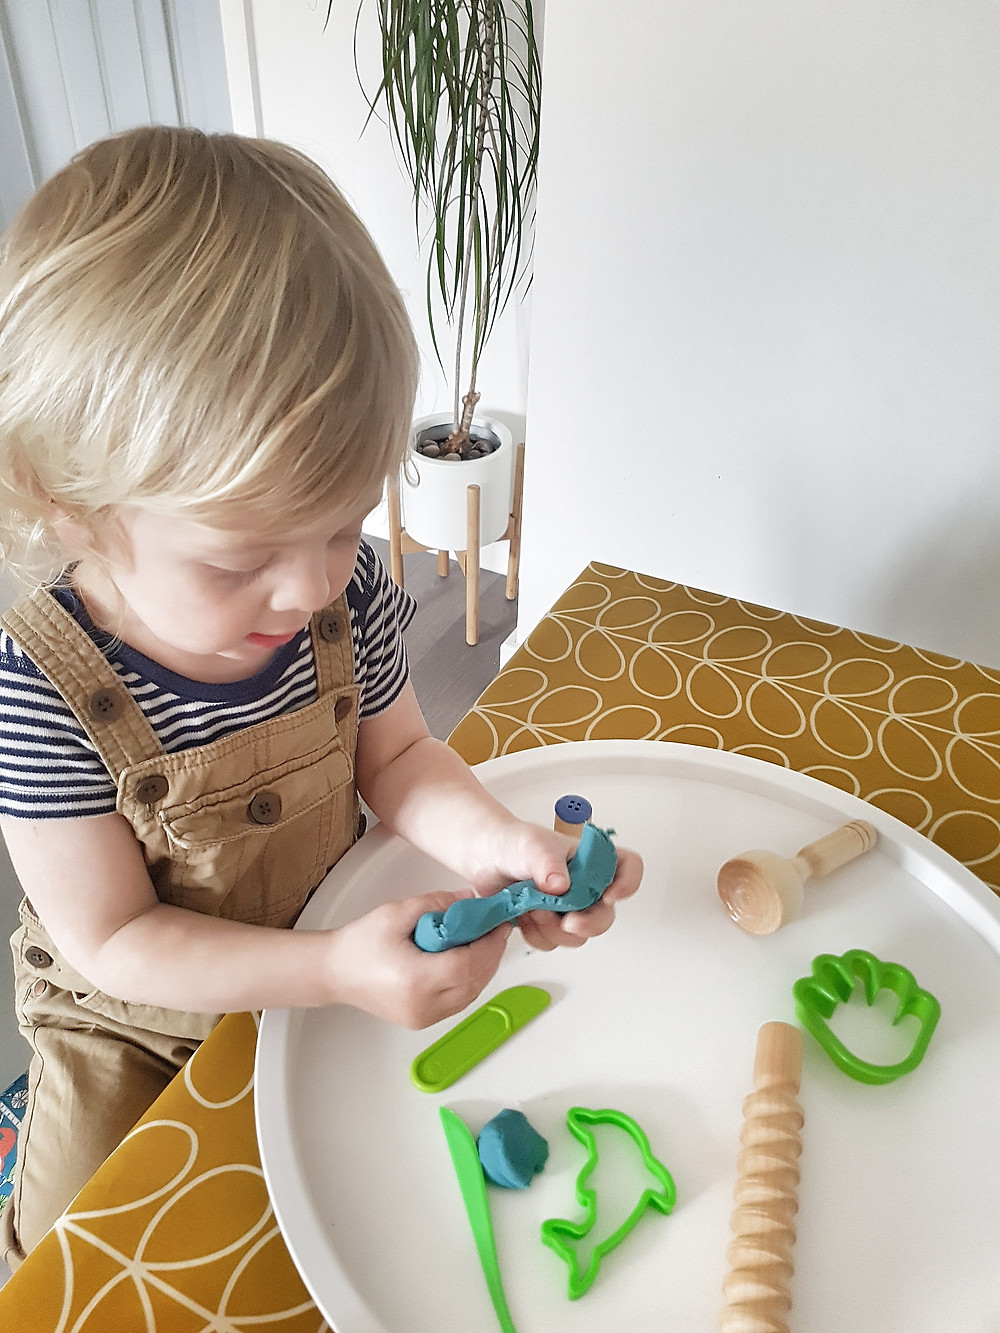 blond toddler playing with blue playdough at table